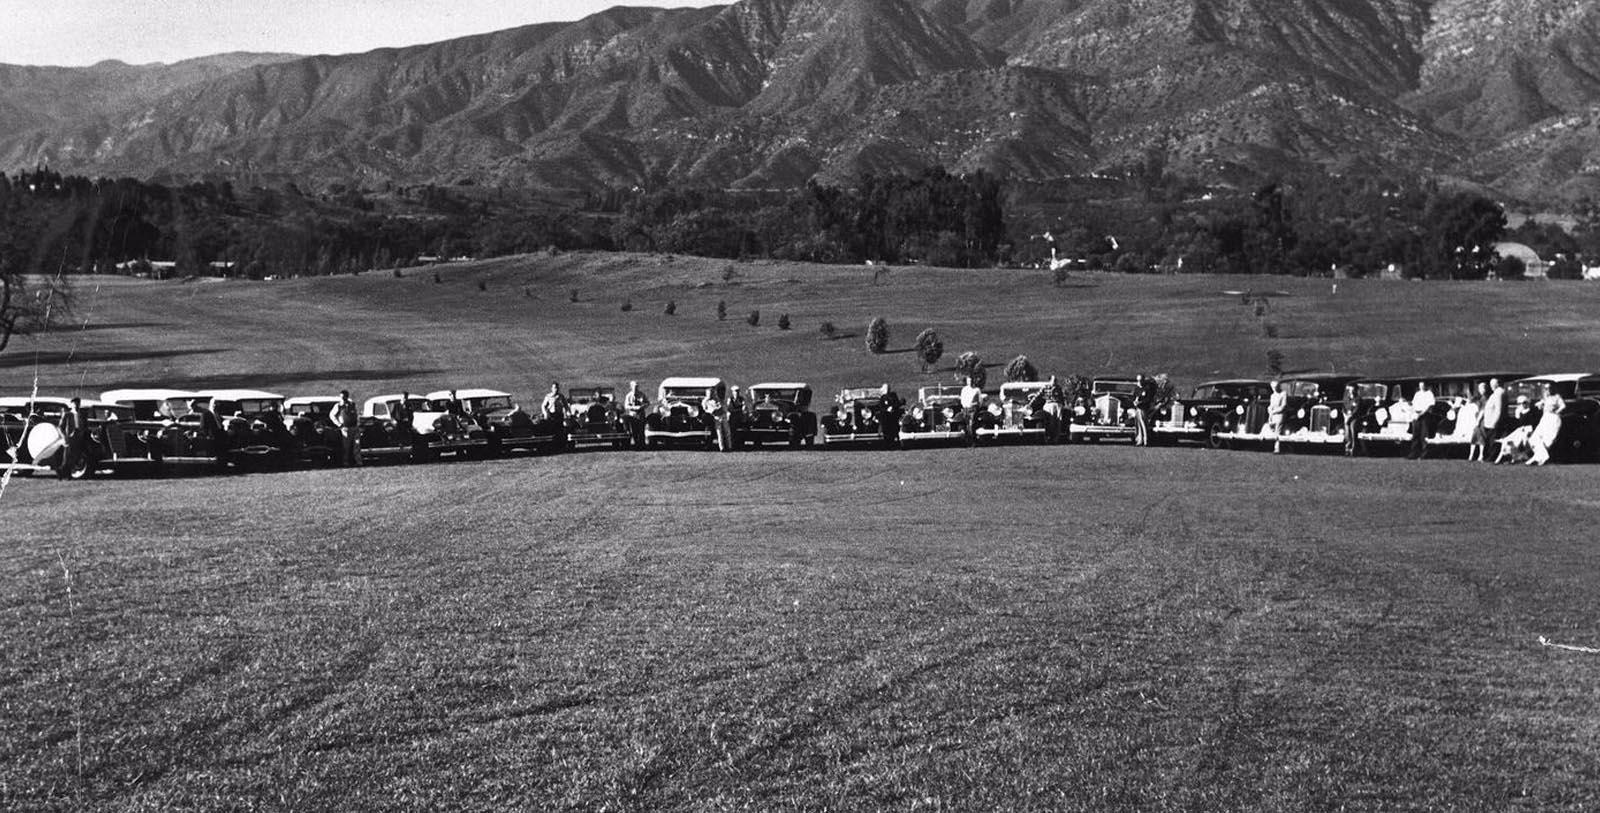 Image of Historic Hotel Grounds with Cars, Ojai Valley Inn, Ojai, California, 1923, Member of Historic Hotels of America, Discover